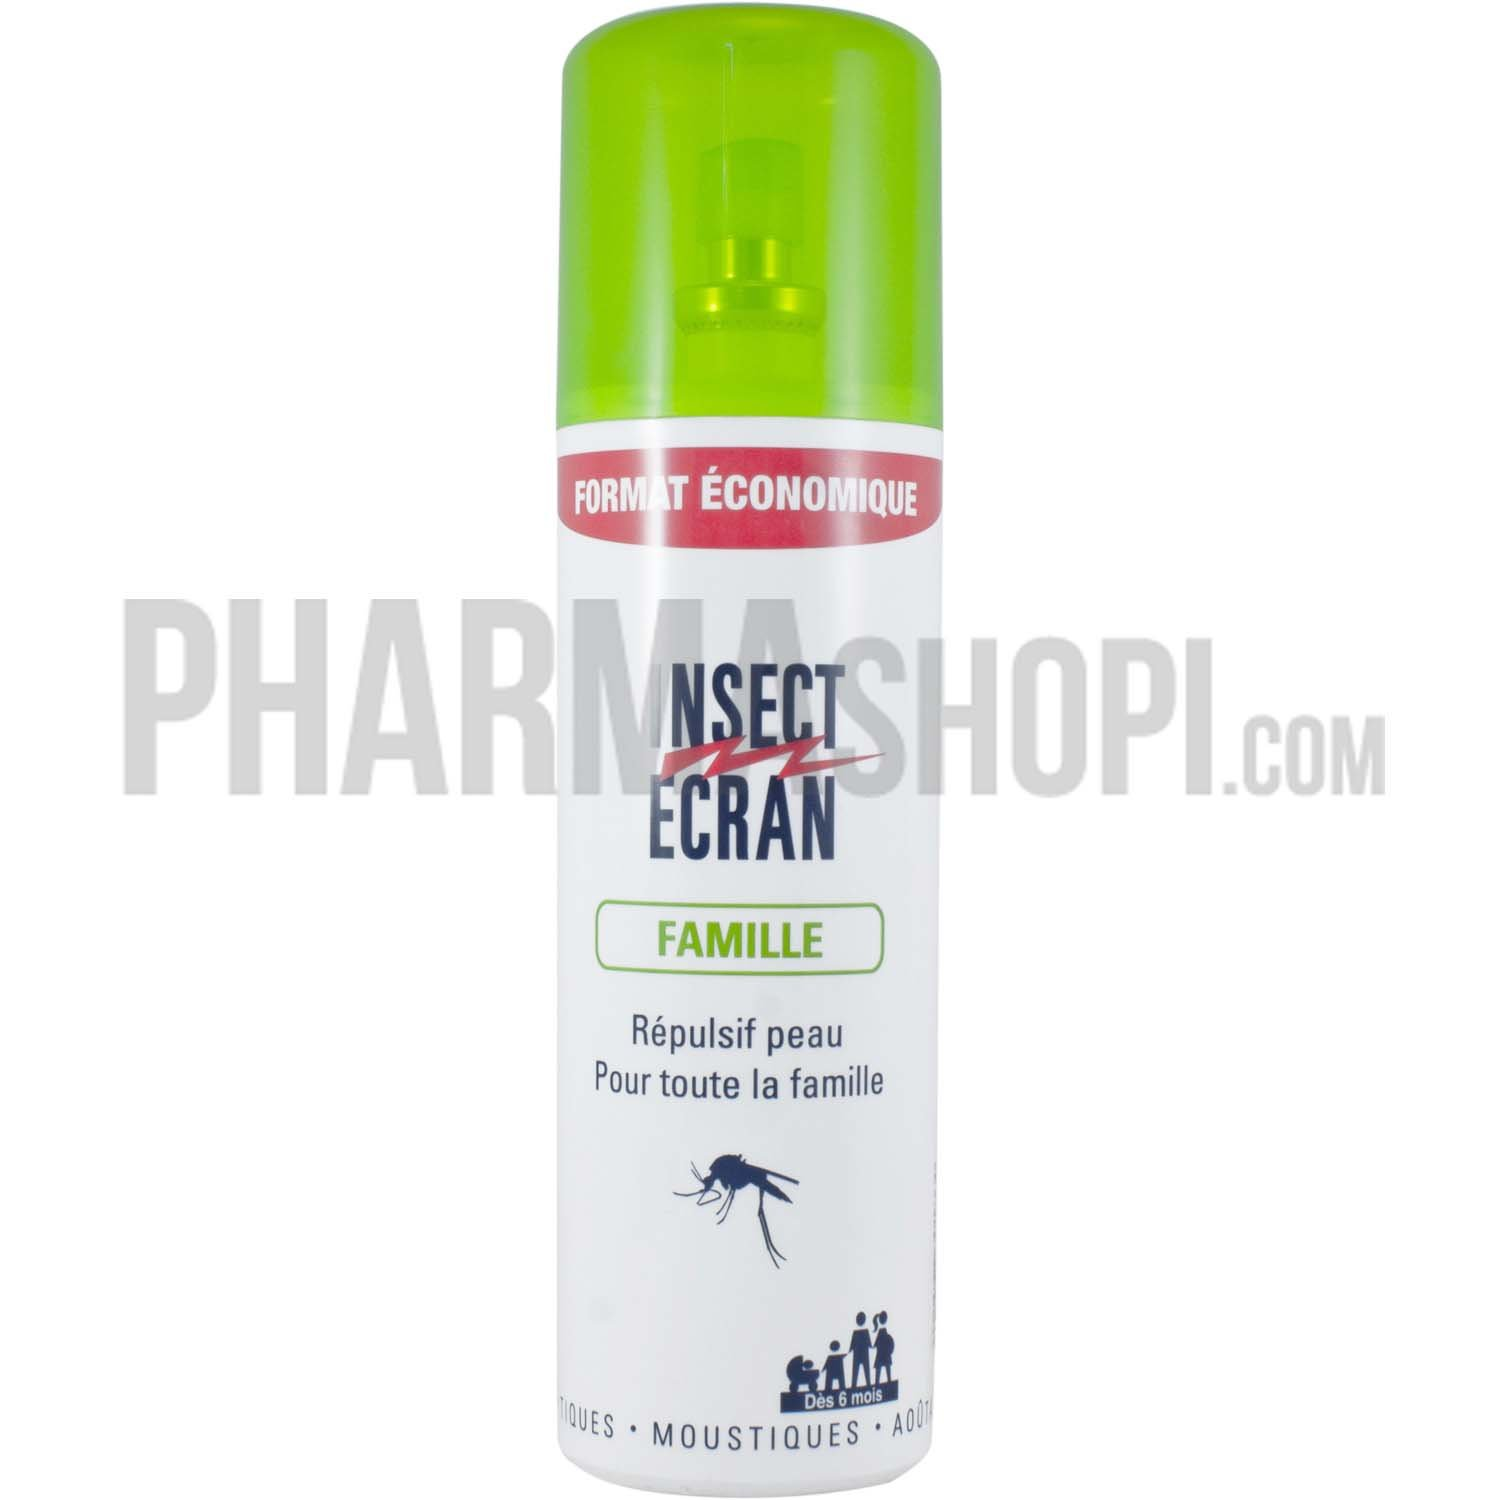 insect ecran spray r pulsif anti moustiques famille insect cran spray 200 ml. Black Bedroom Furniture Sets. Home Design Ideas